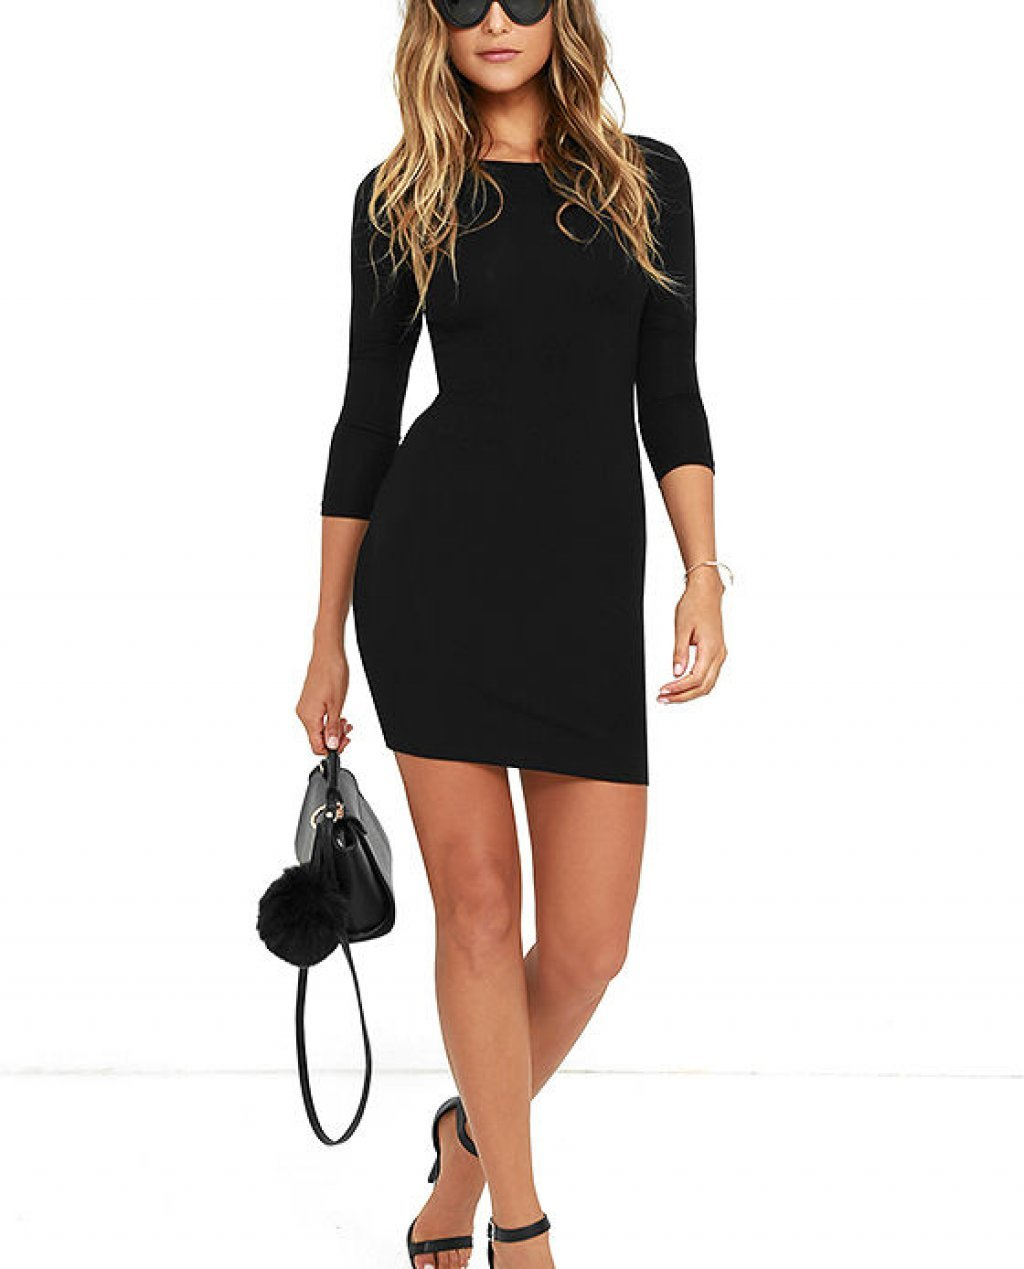 Comeback Baby Black Dress